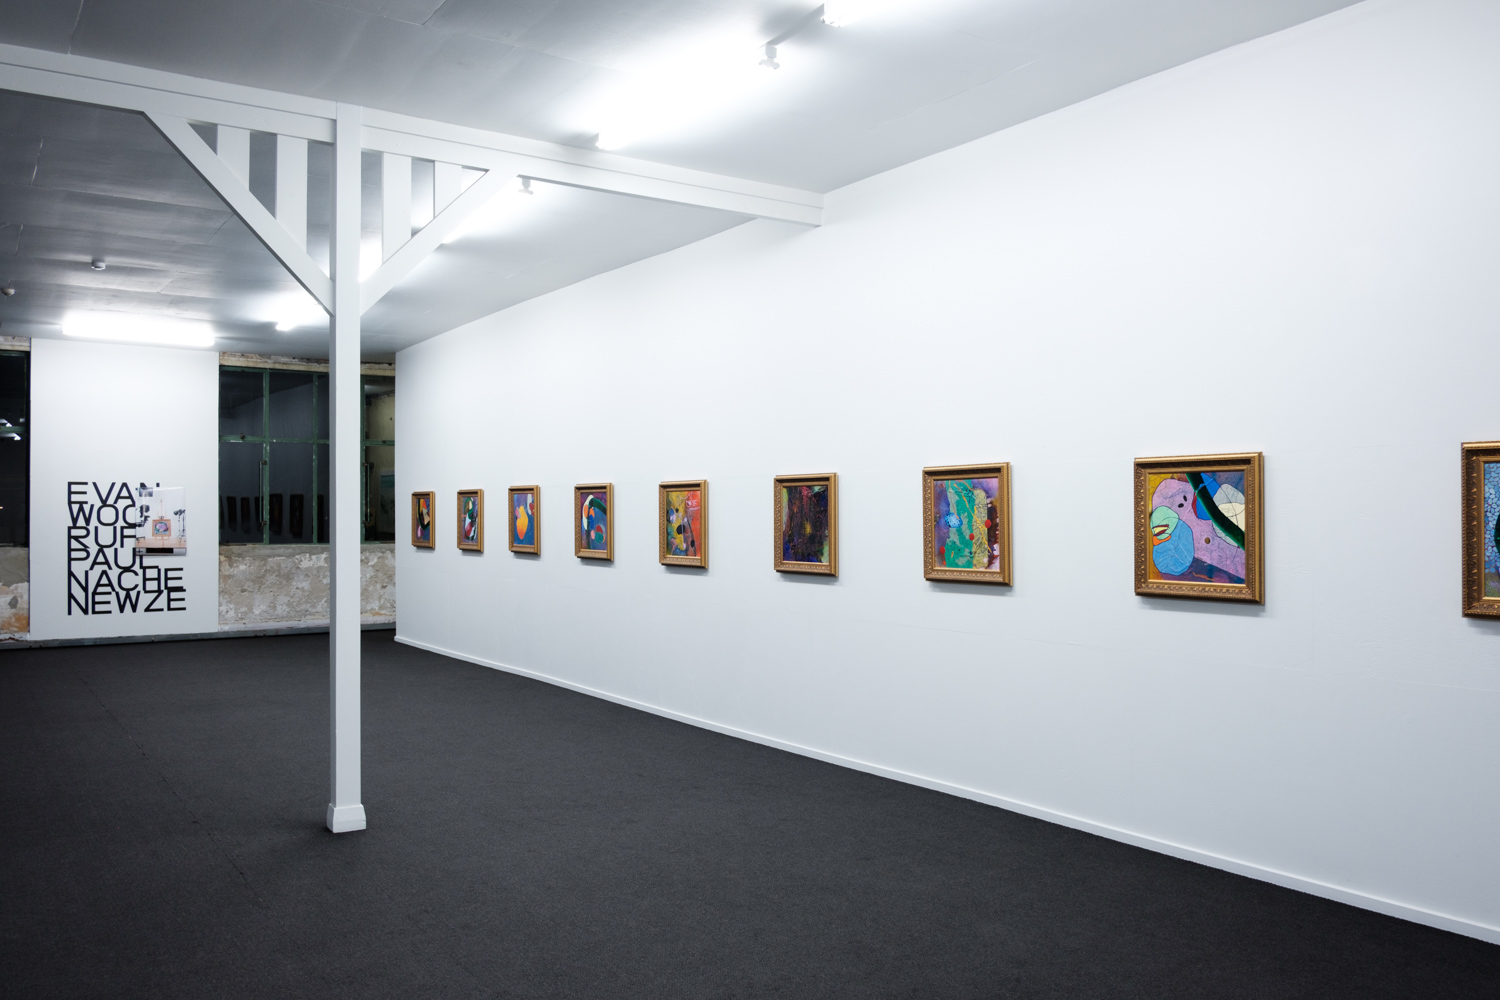 Installation photograph taken by Thomas Teutenberg, courtesy of the artist and PAULNACHE, Gisborne © 2018